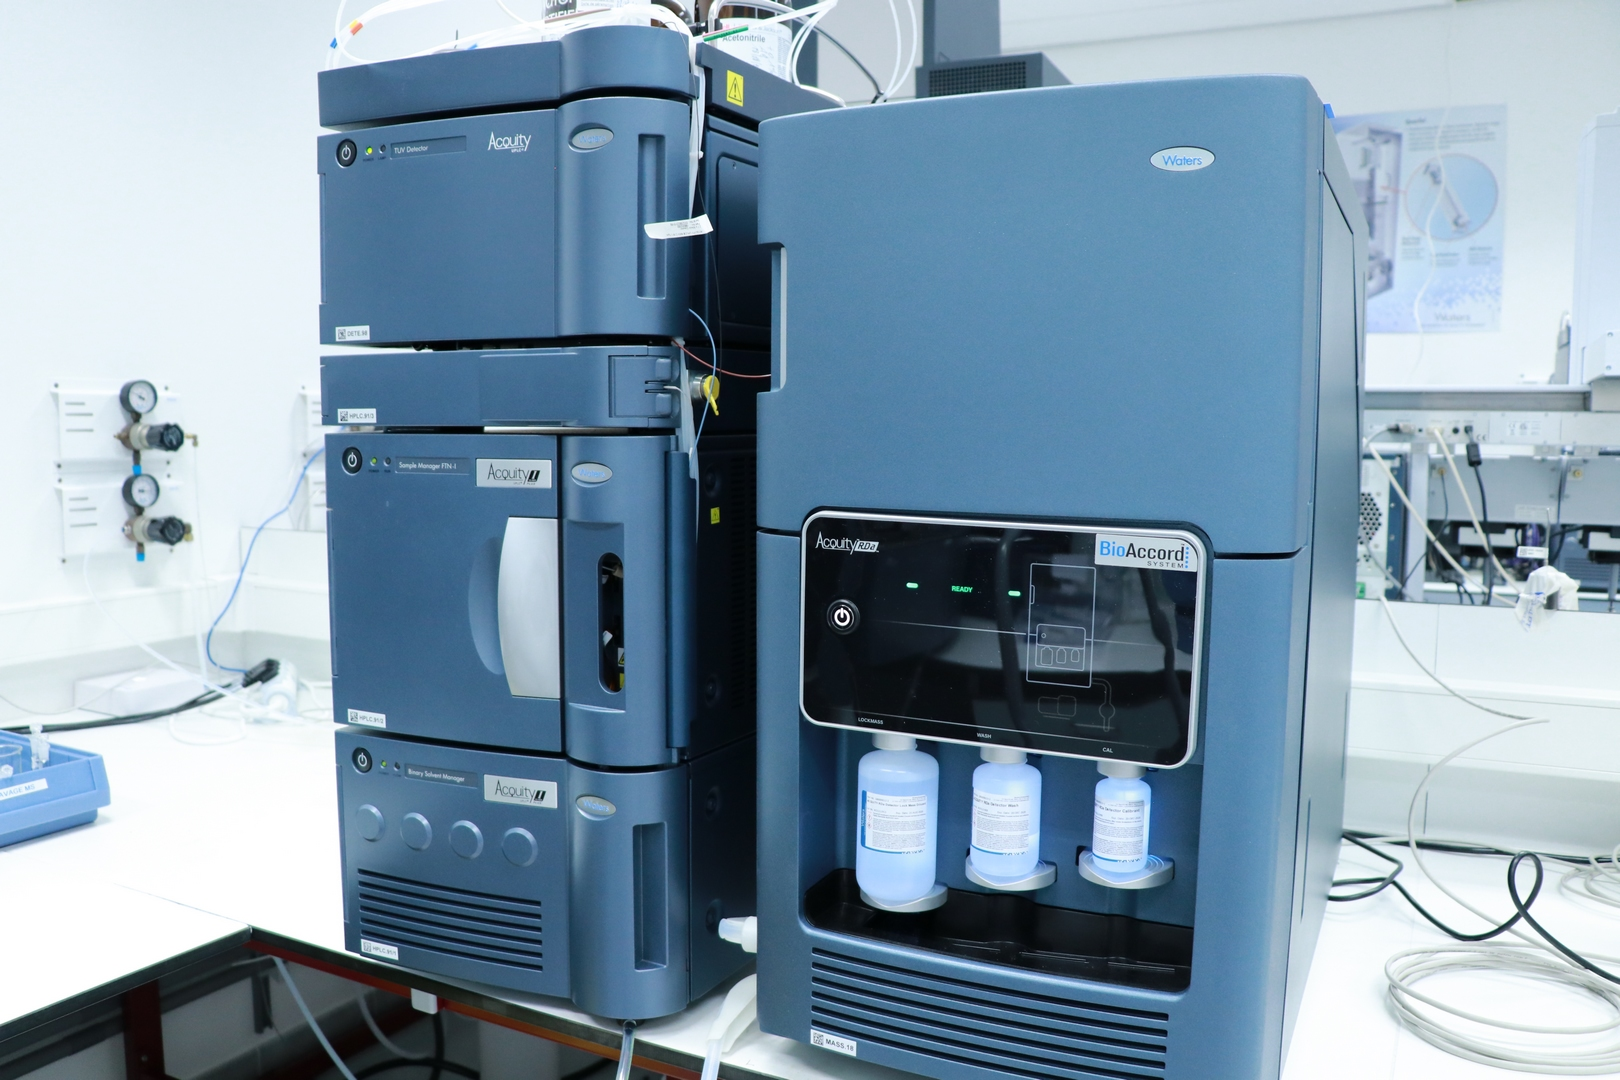 Quality Assistance Mass Spectrometry BioAccord